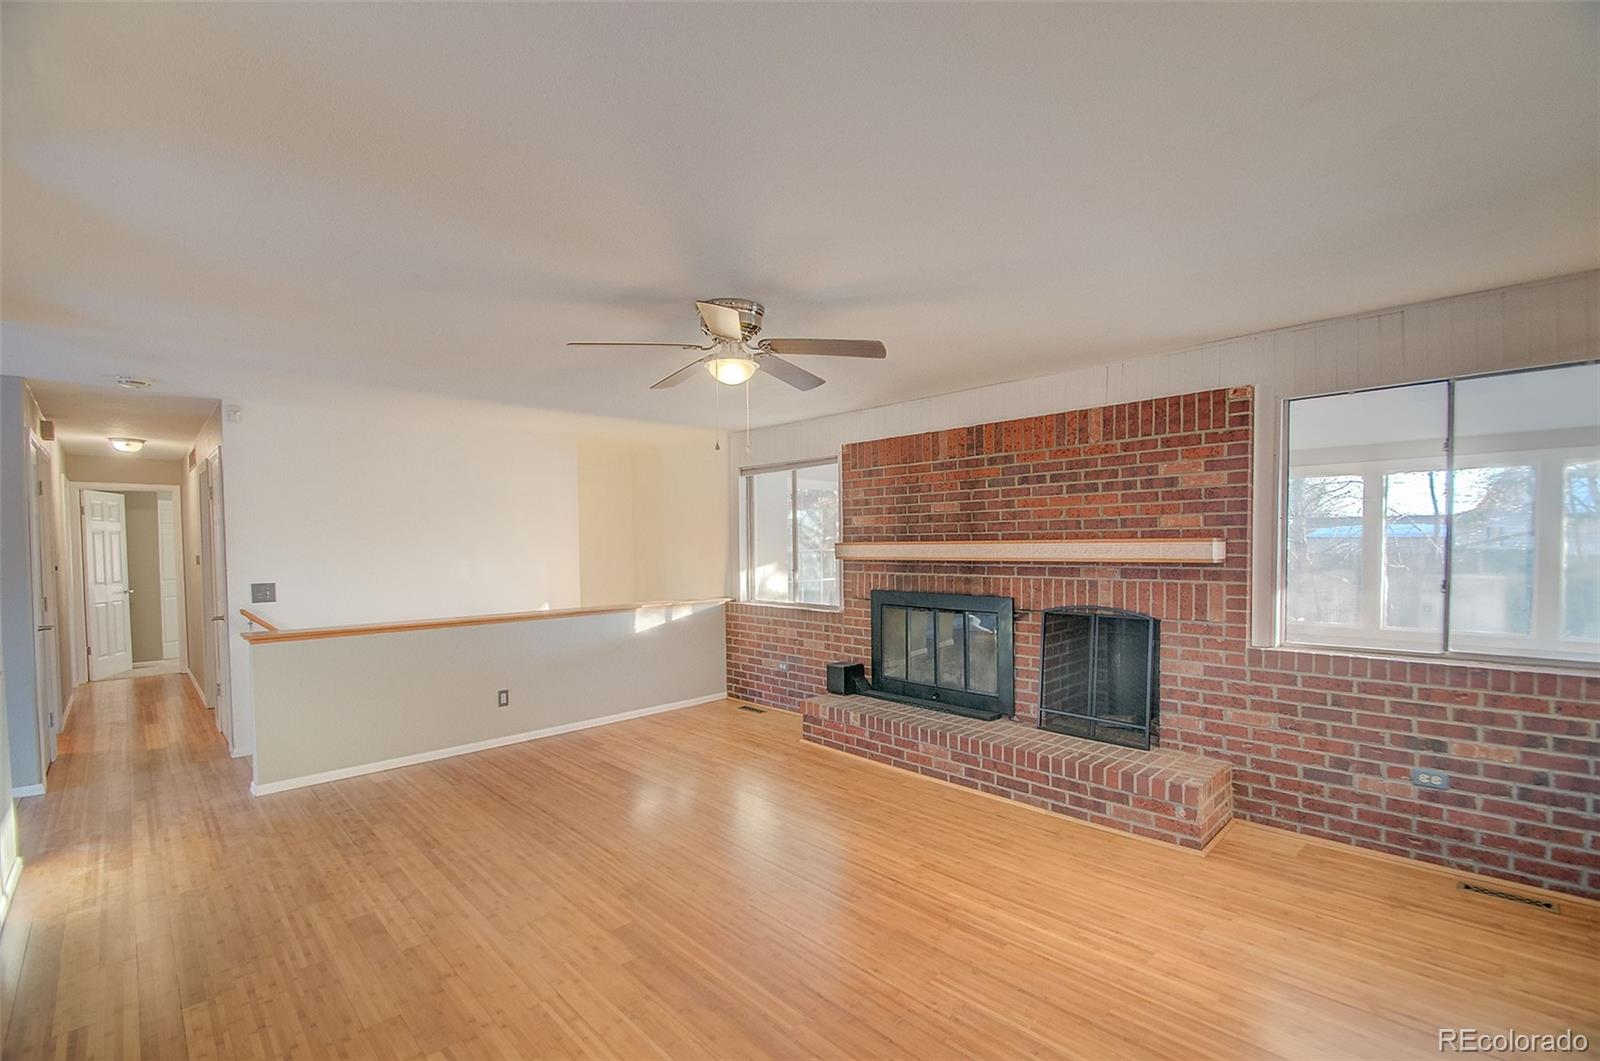 MLS# 2260867 - 9 - 6075 W 82nd Place, Arvada, CO 80003